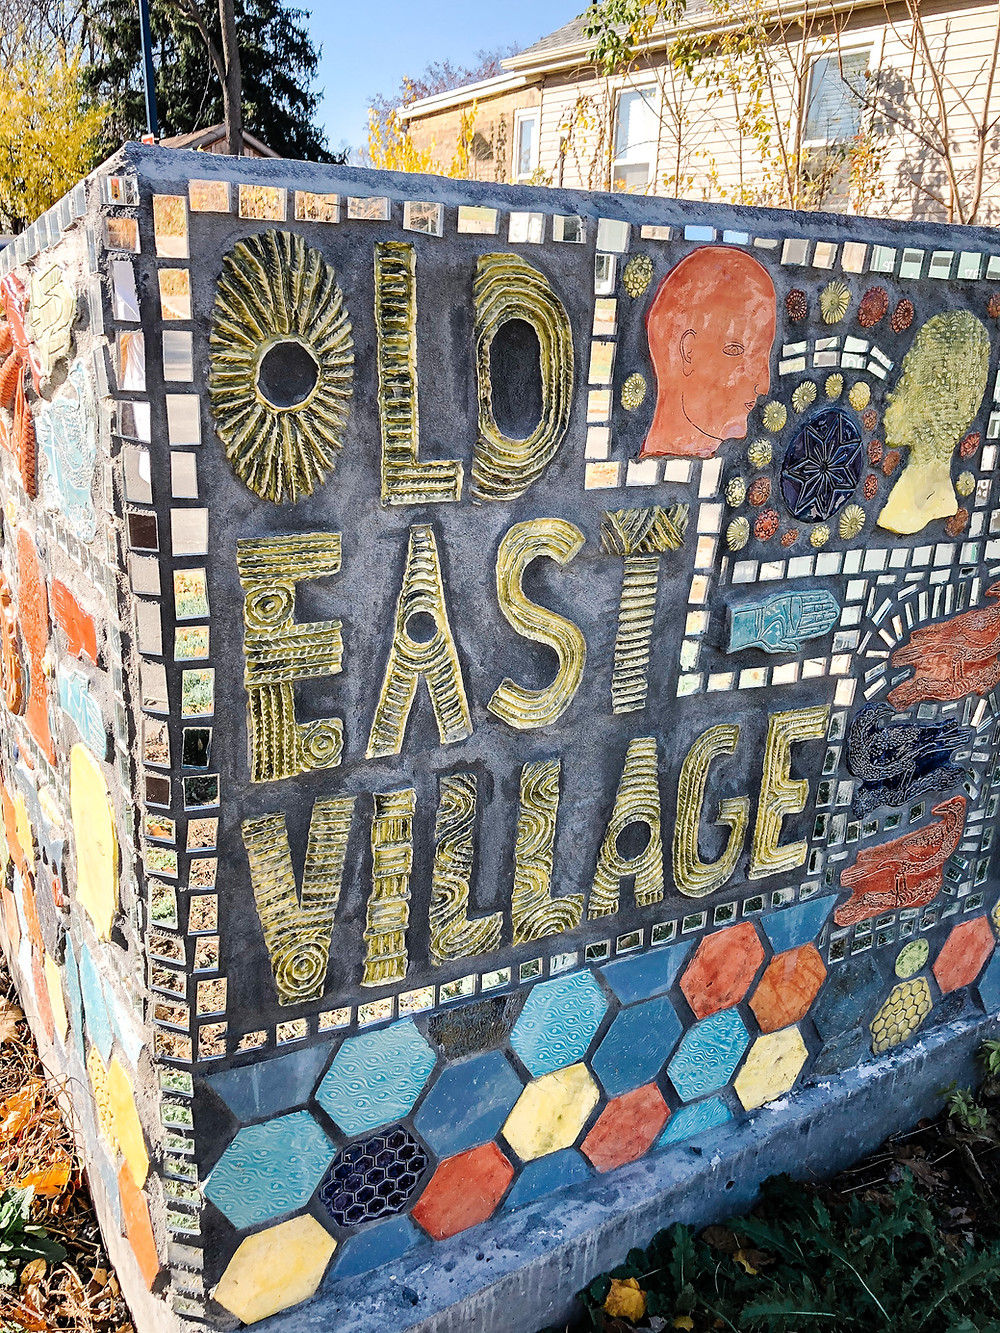 A mural made of ceramic pieces that reads: Old East Village